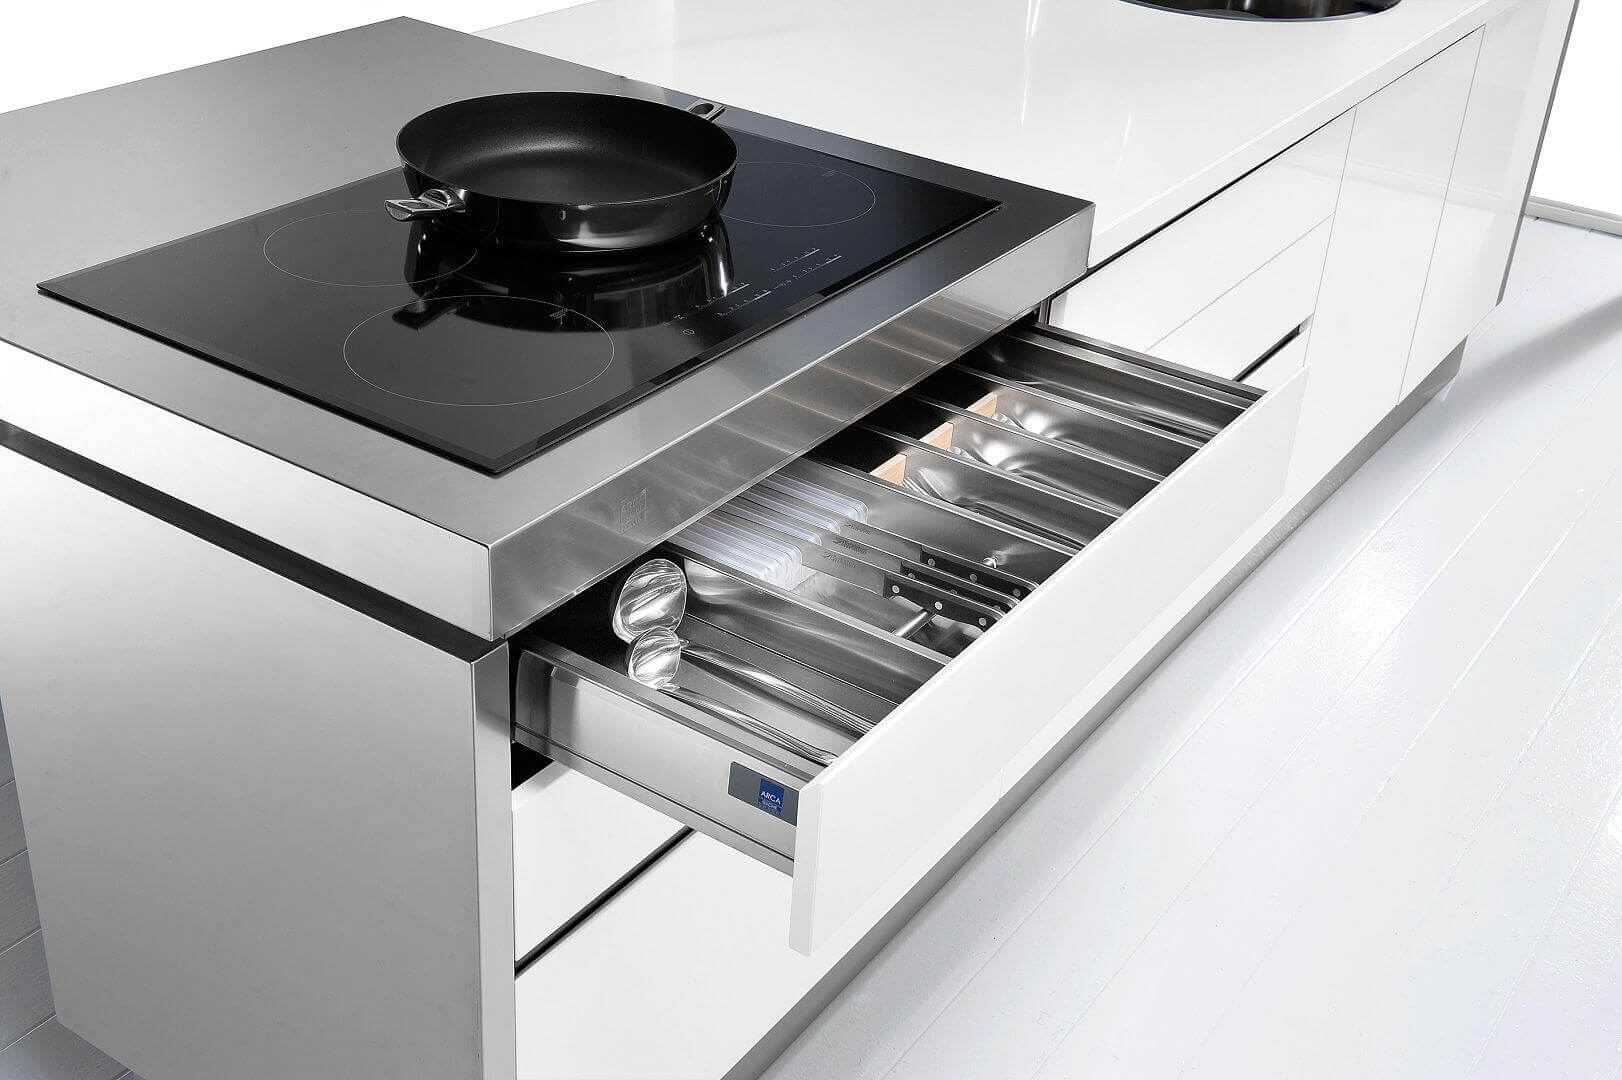 Arca Cucine Italy - Cutlery drawer port with dividers made of stainless steel, LED lighting and locking Braking